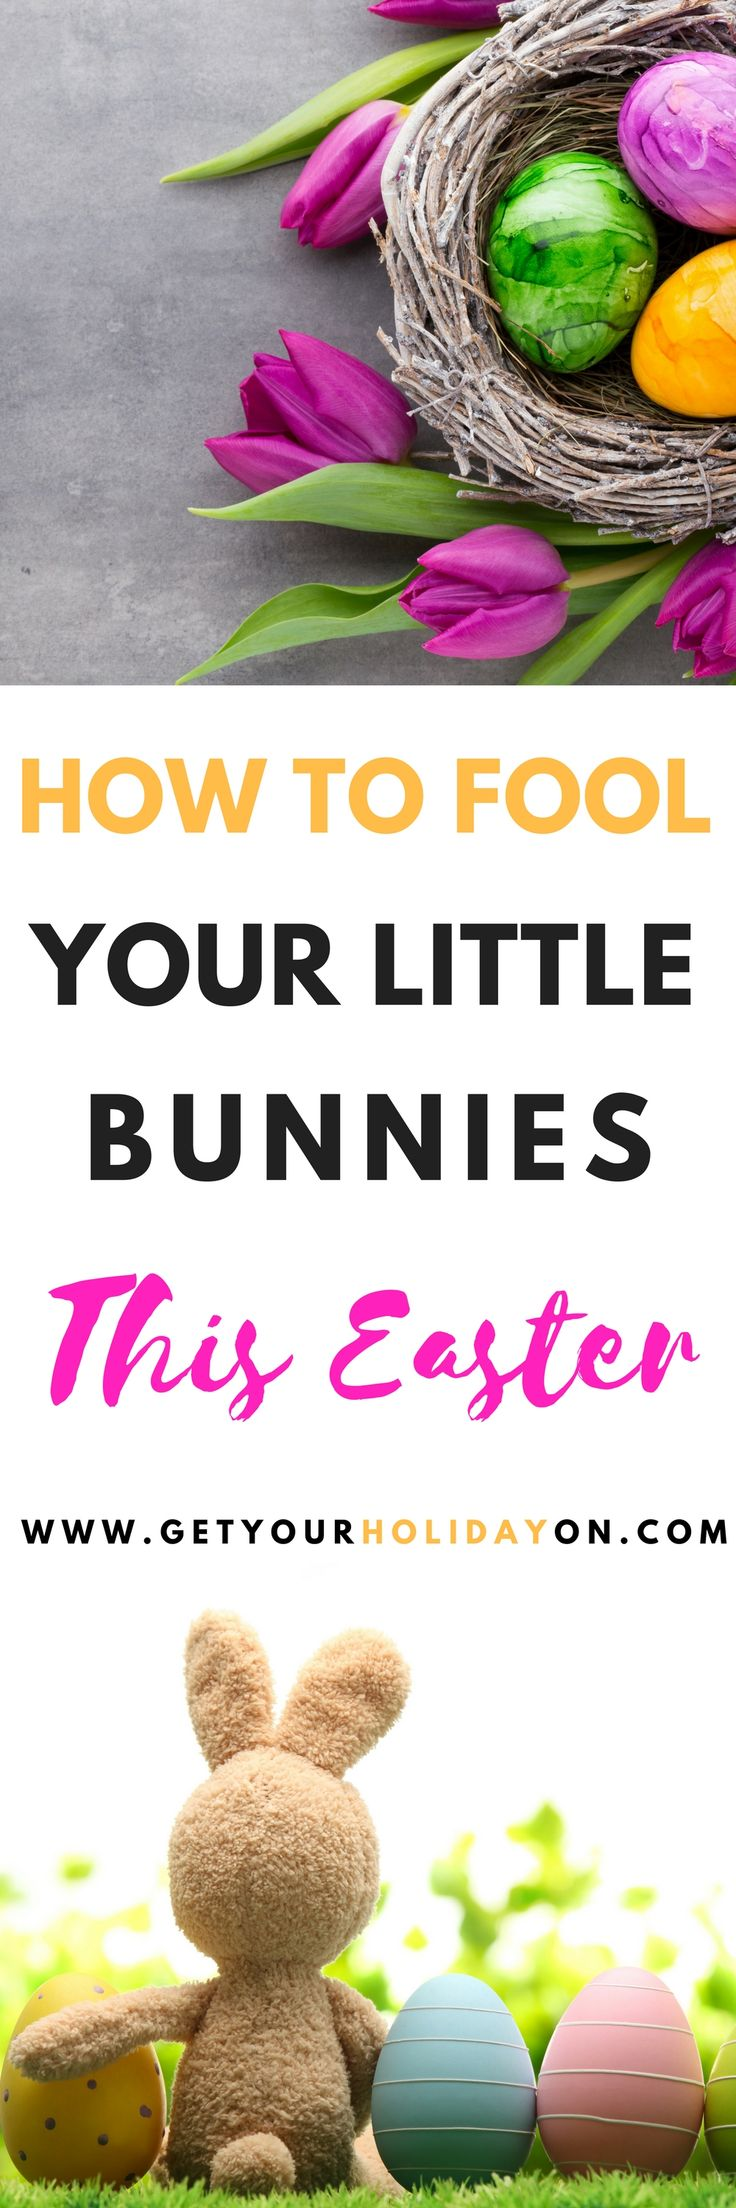 Easter Bunny April Fools | What a fantastic idea to trick your kids with a fun joke surprise from a silly rabbit. Read this to find out how to prank Easter Eggs and more! #diymom #momlife #easterbunny #easter